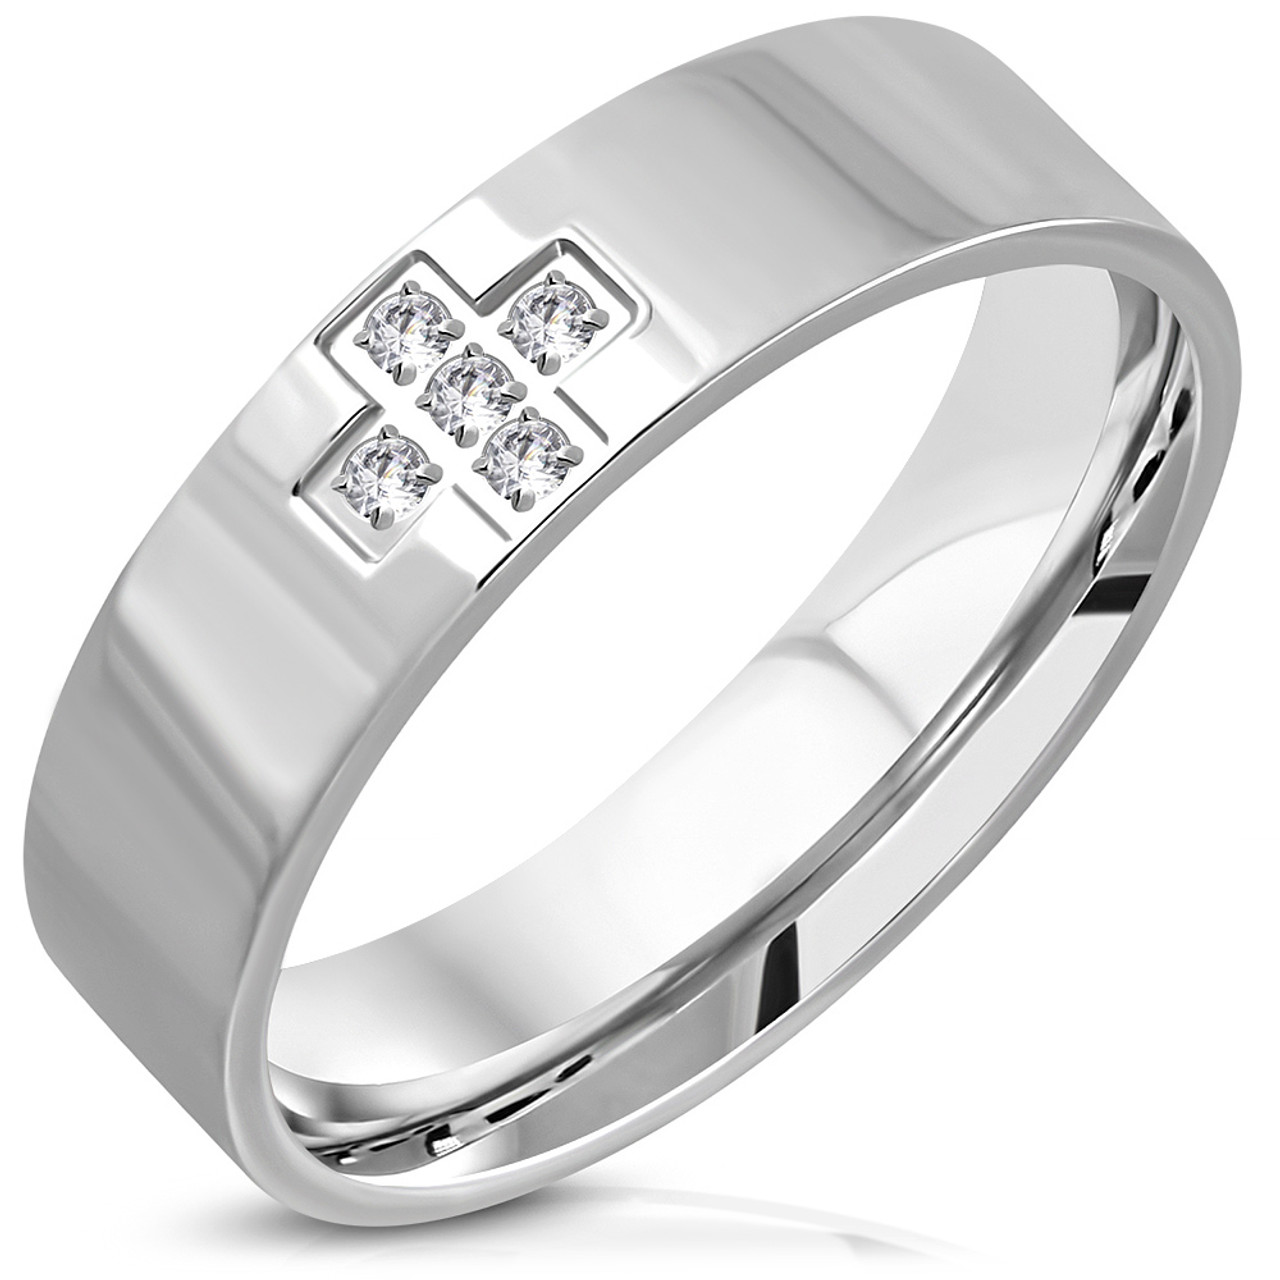 Stainless Steel Matte Finished Comfort Fit Wedding Flat Band Ring with Clear CZ